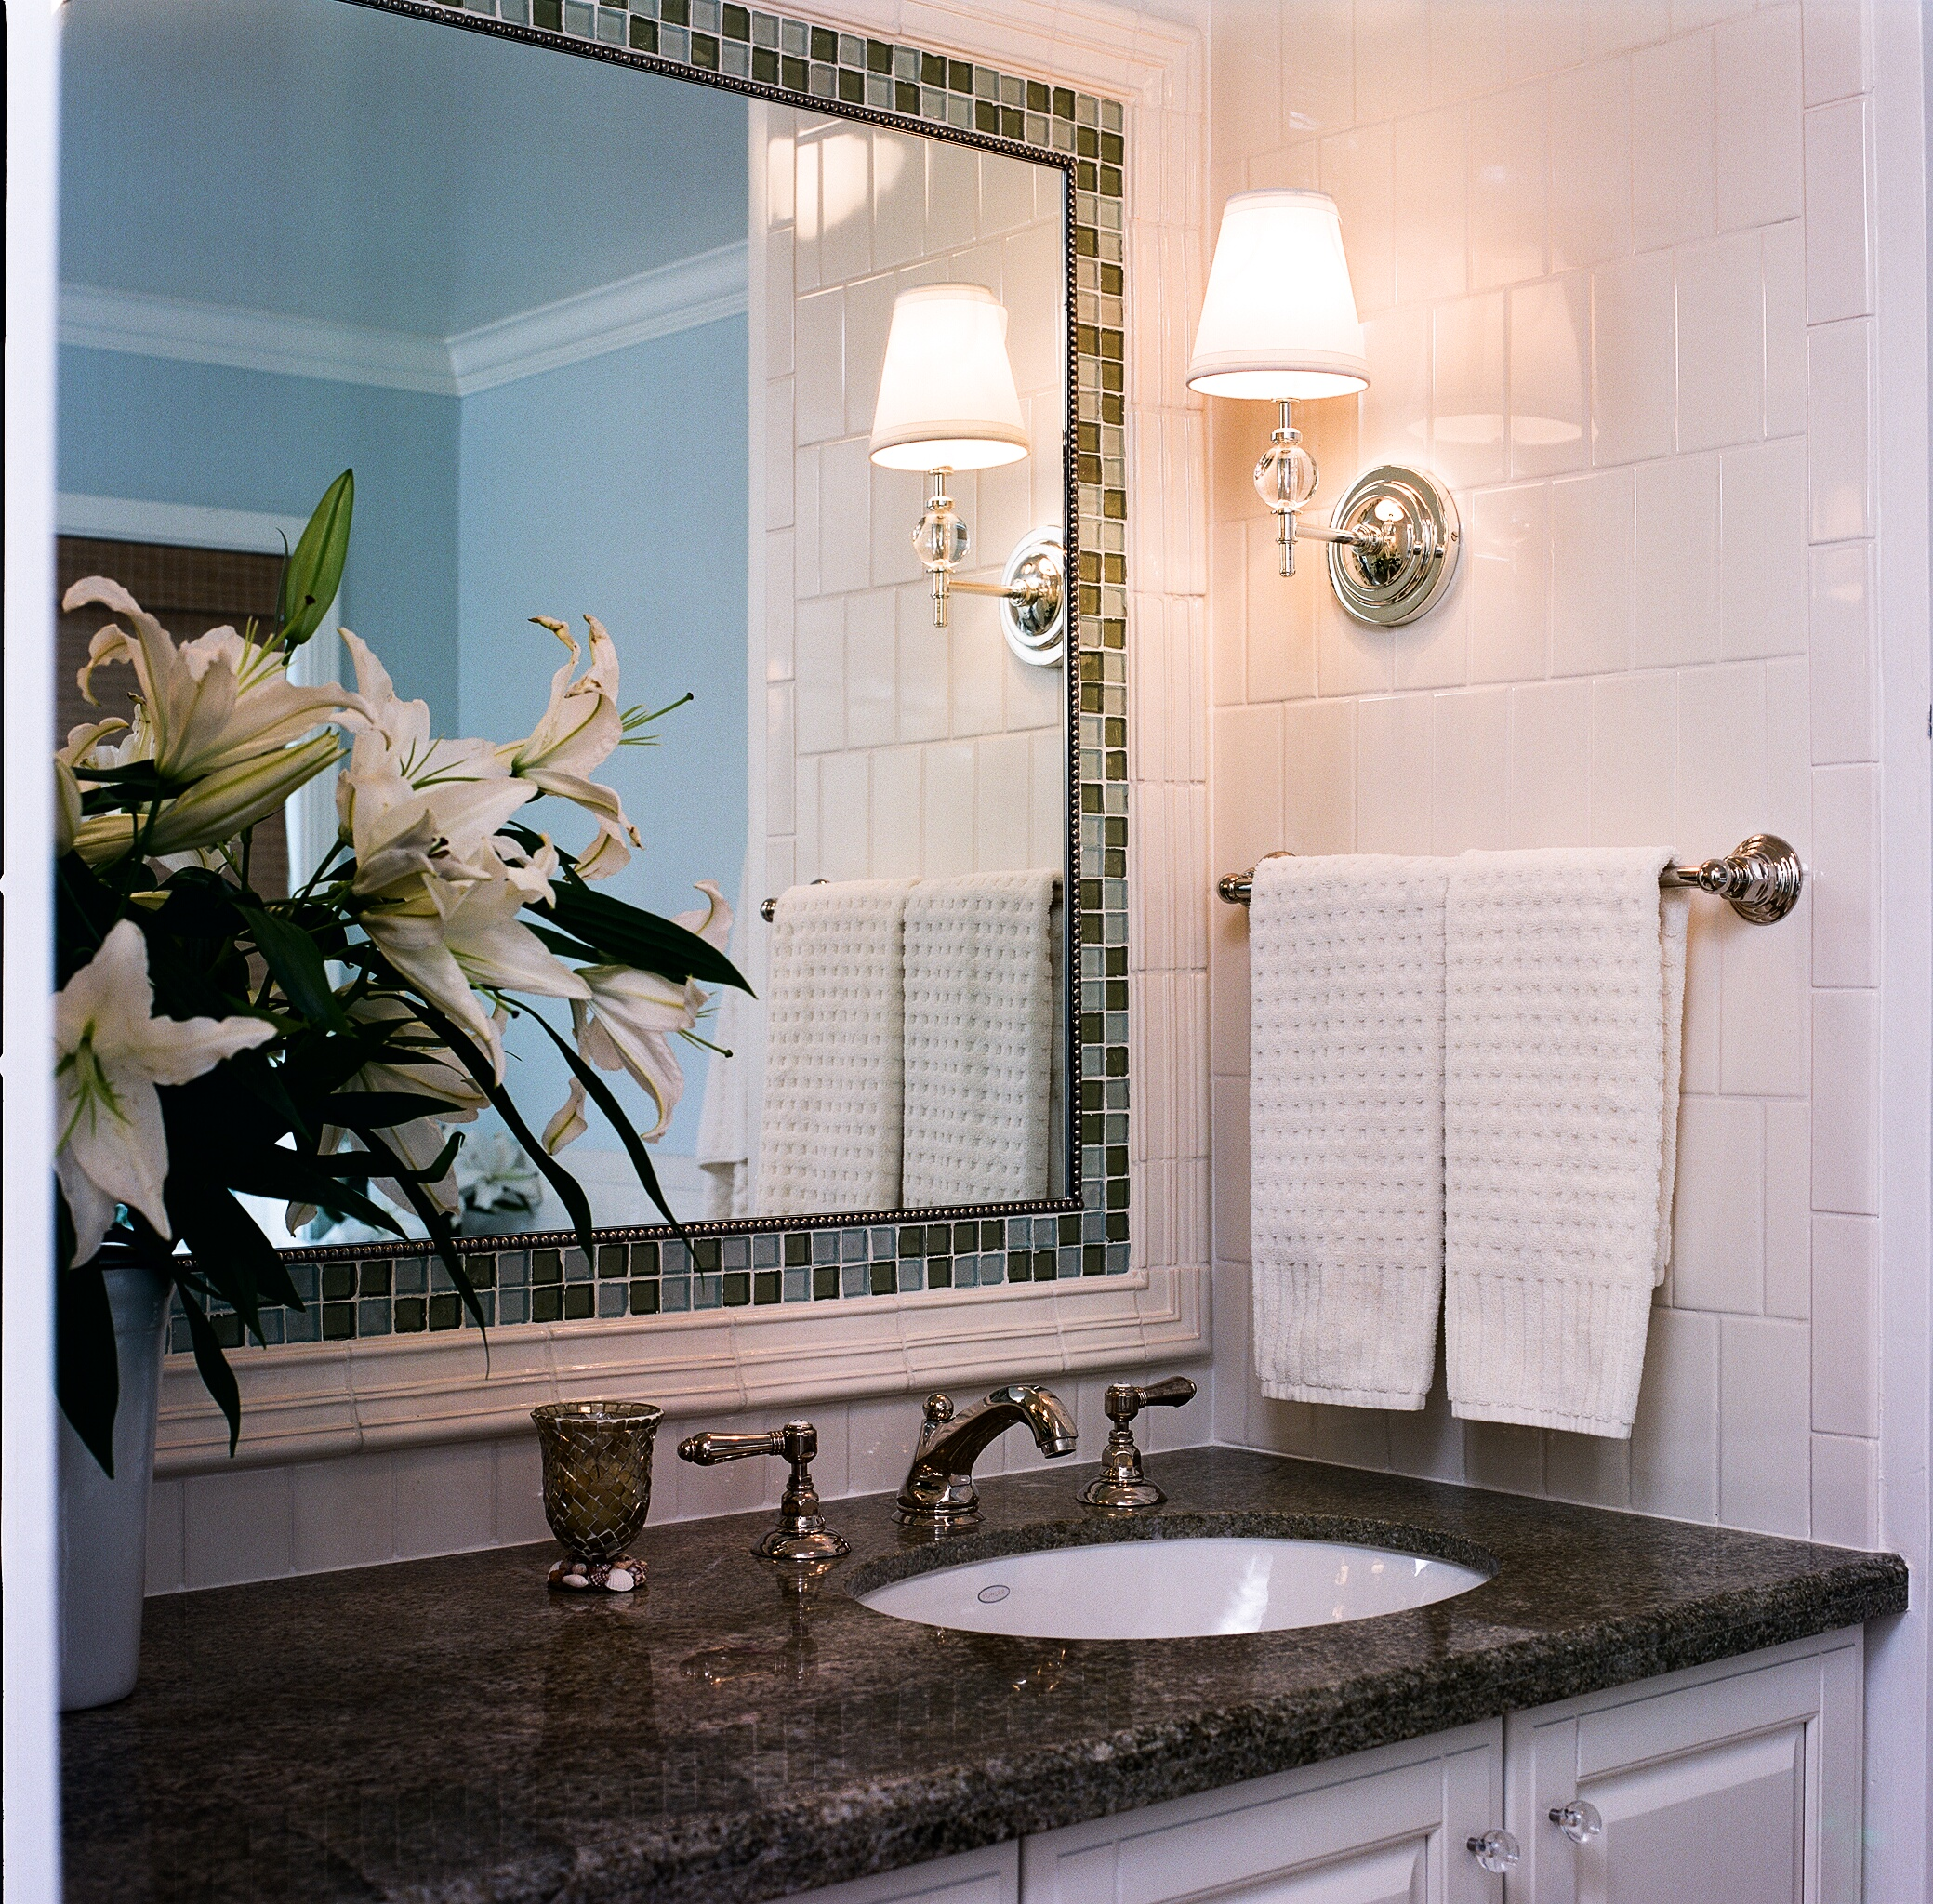 Tile mirror and granite counter sink